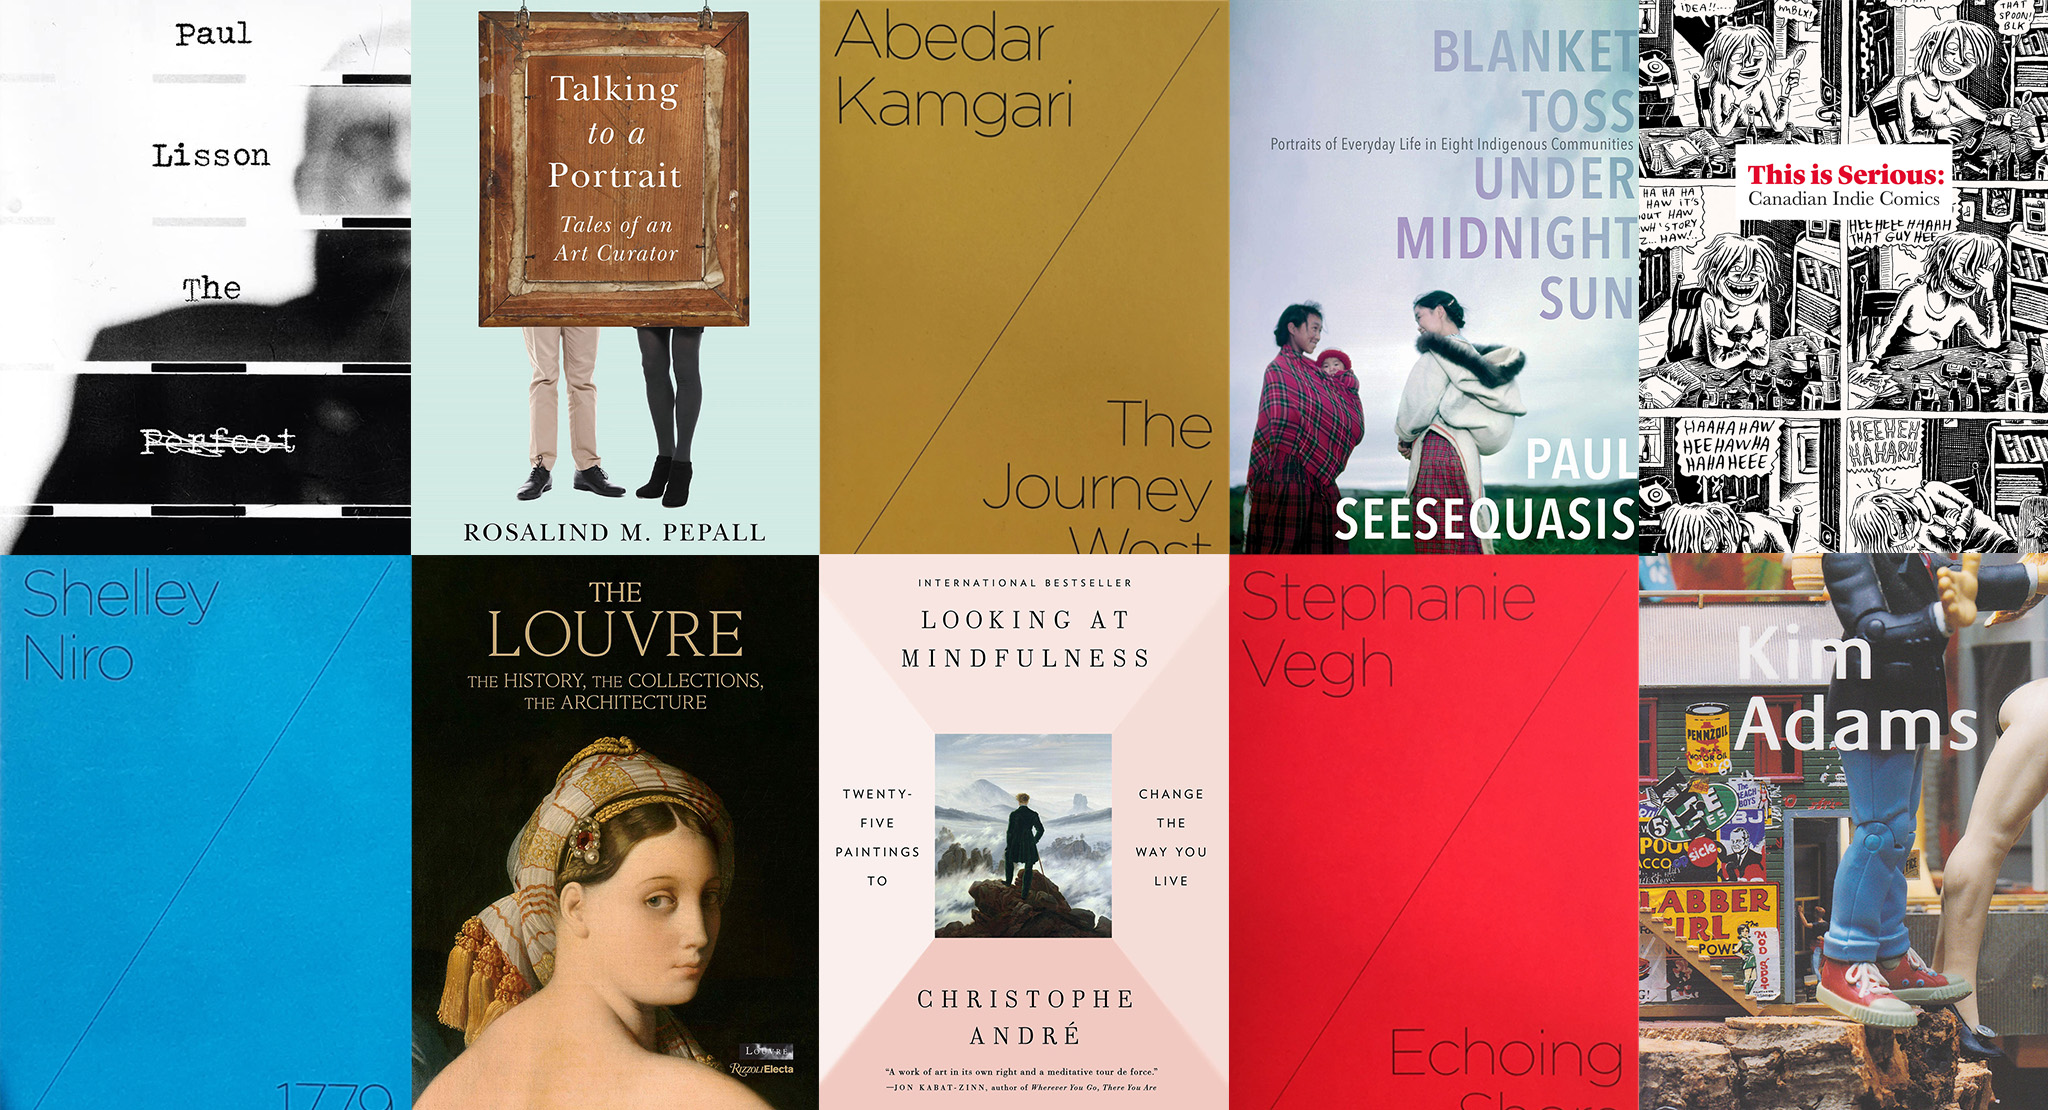 Staff Picks: Find your Next Read at the Shop at AGH